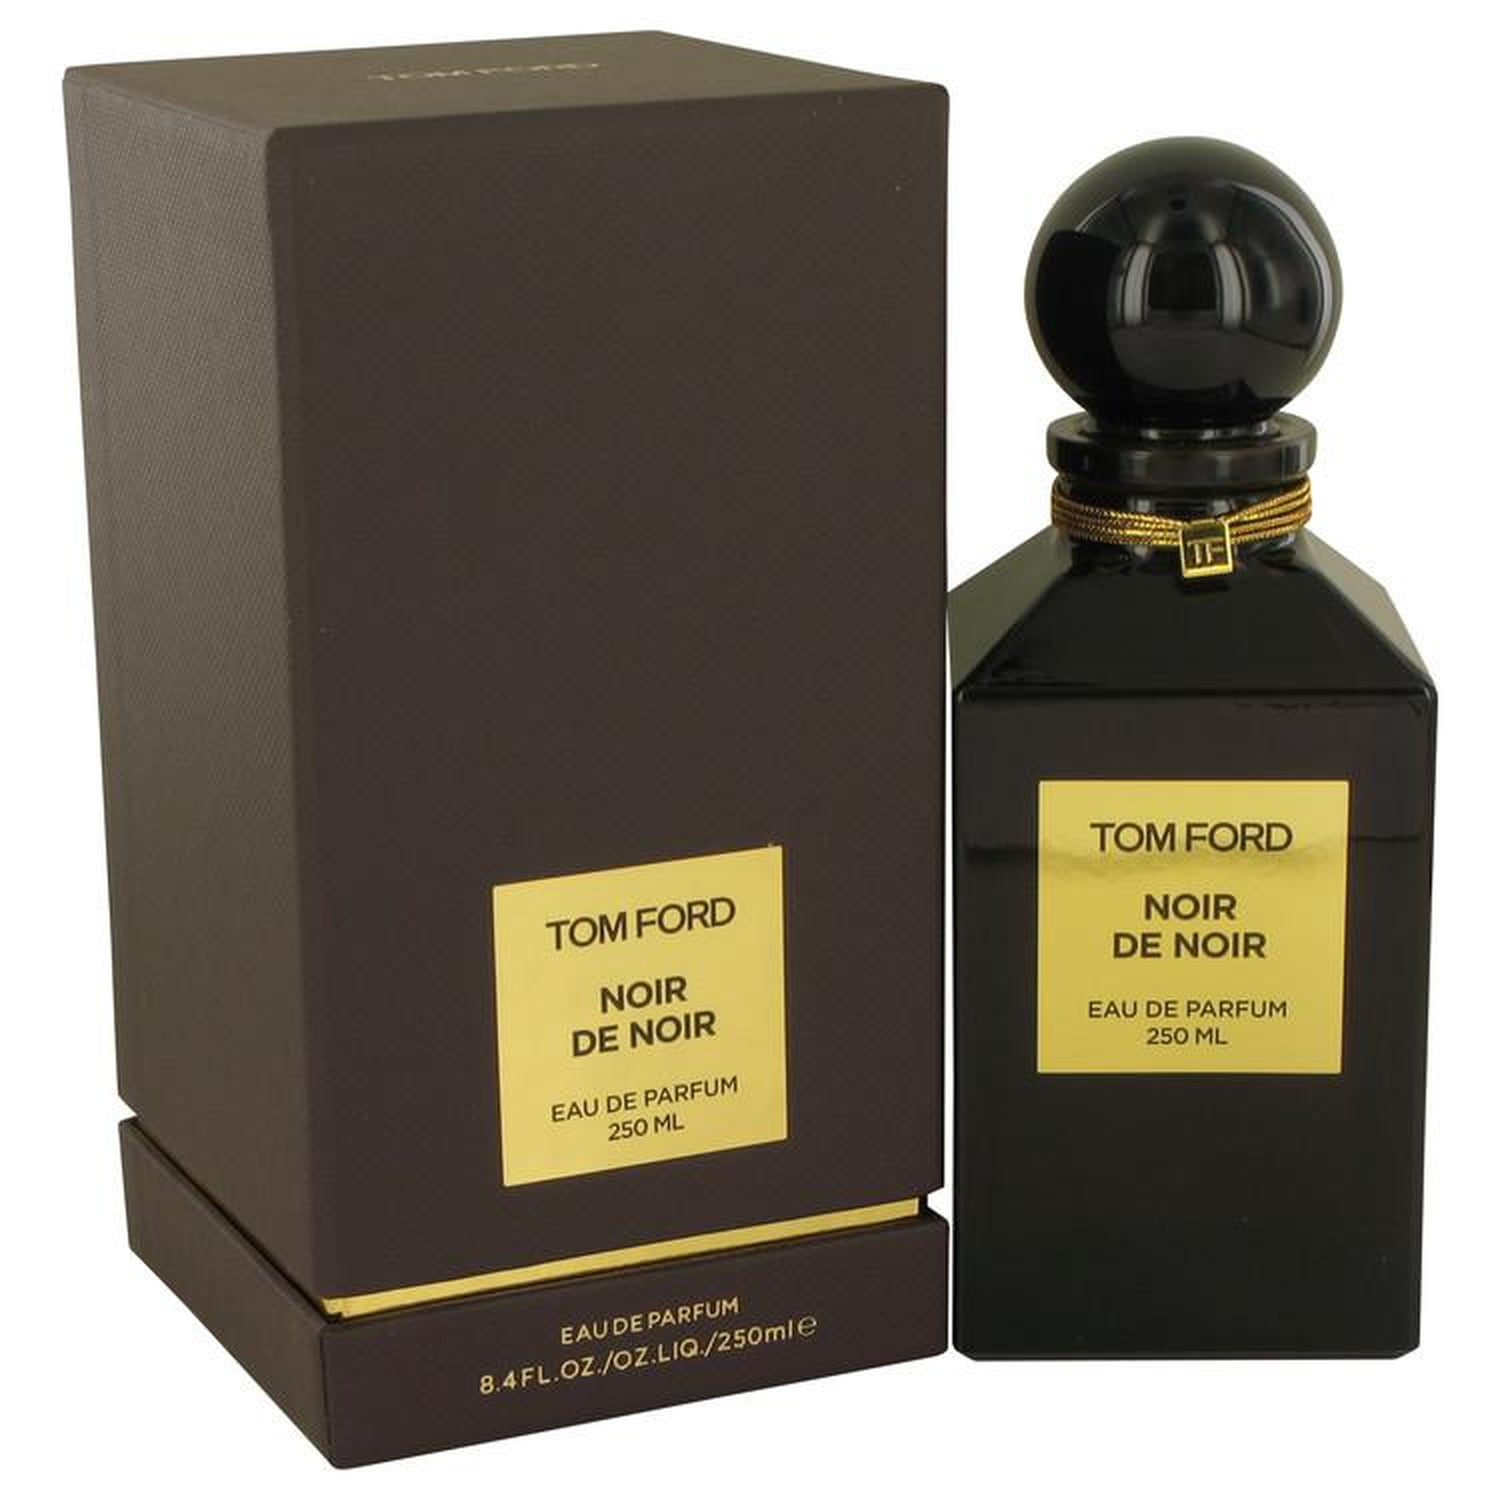 Tom Ford Noir De Noir Eau de Parfum By Tom Ford 8.4 oz Eau de Parfum